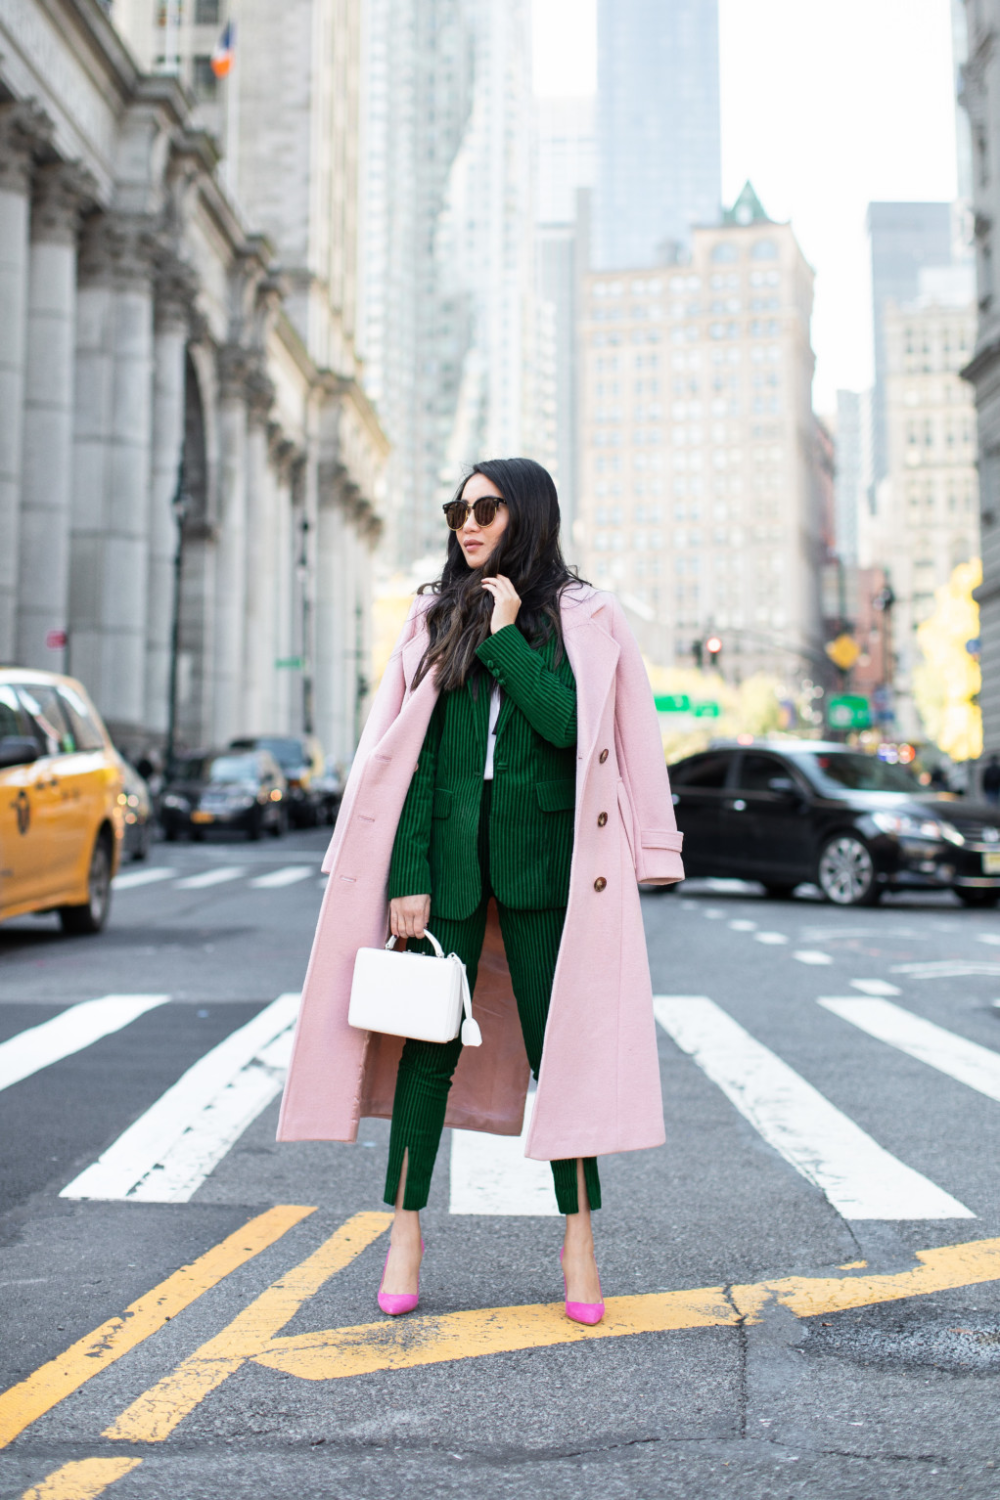 Color Story - Fall Outfits in Pink and Green - Wendy's Lookbook